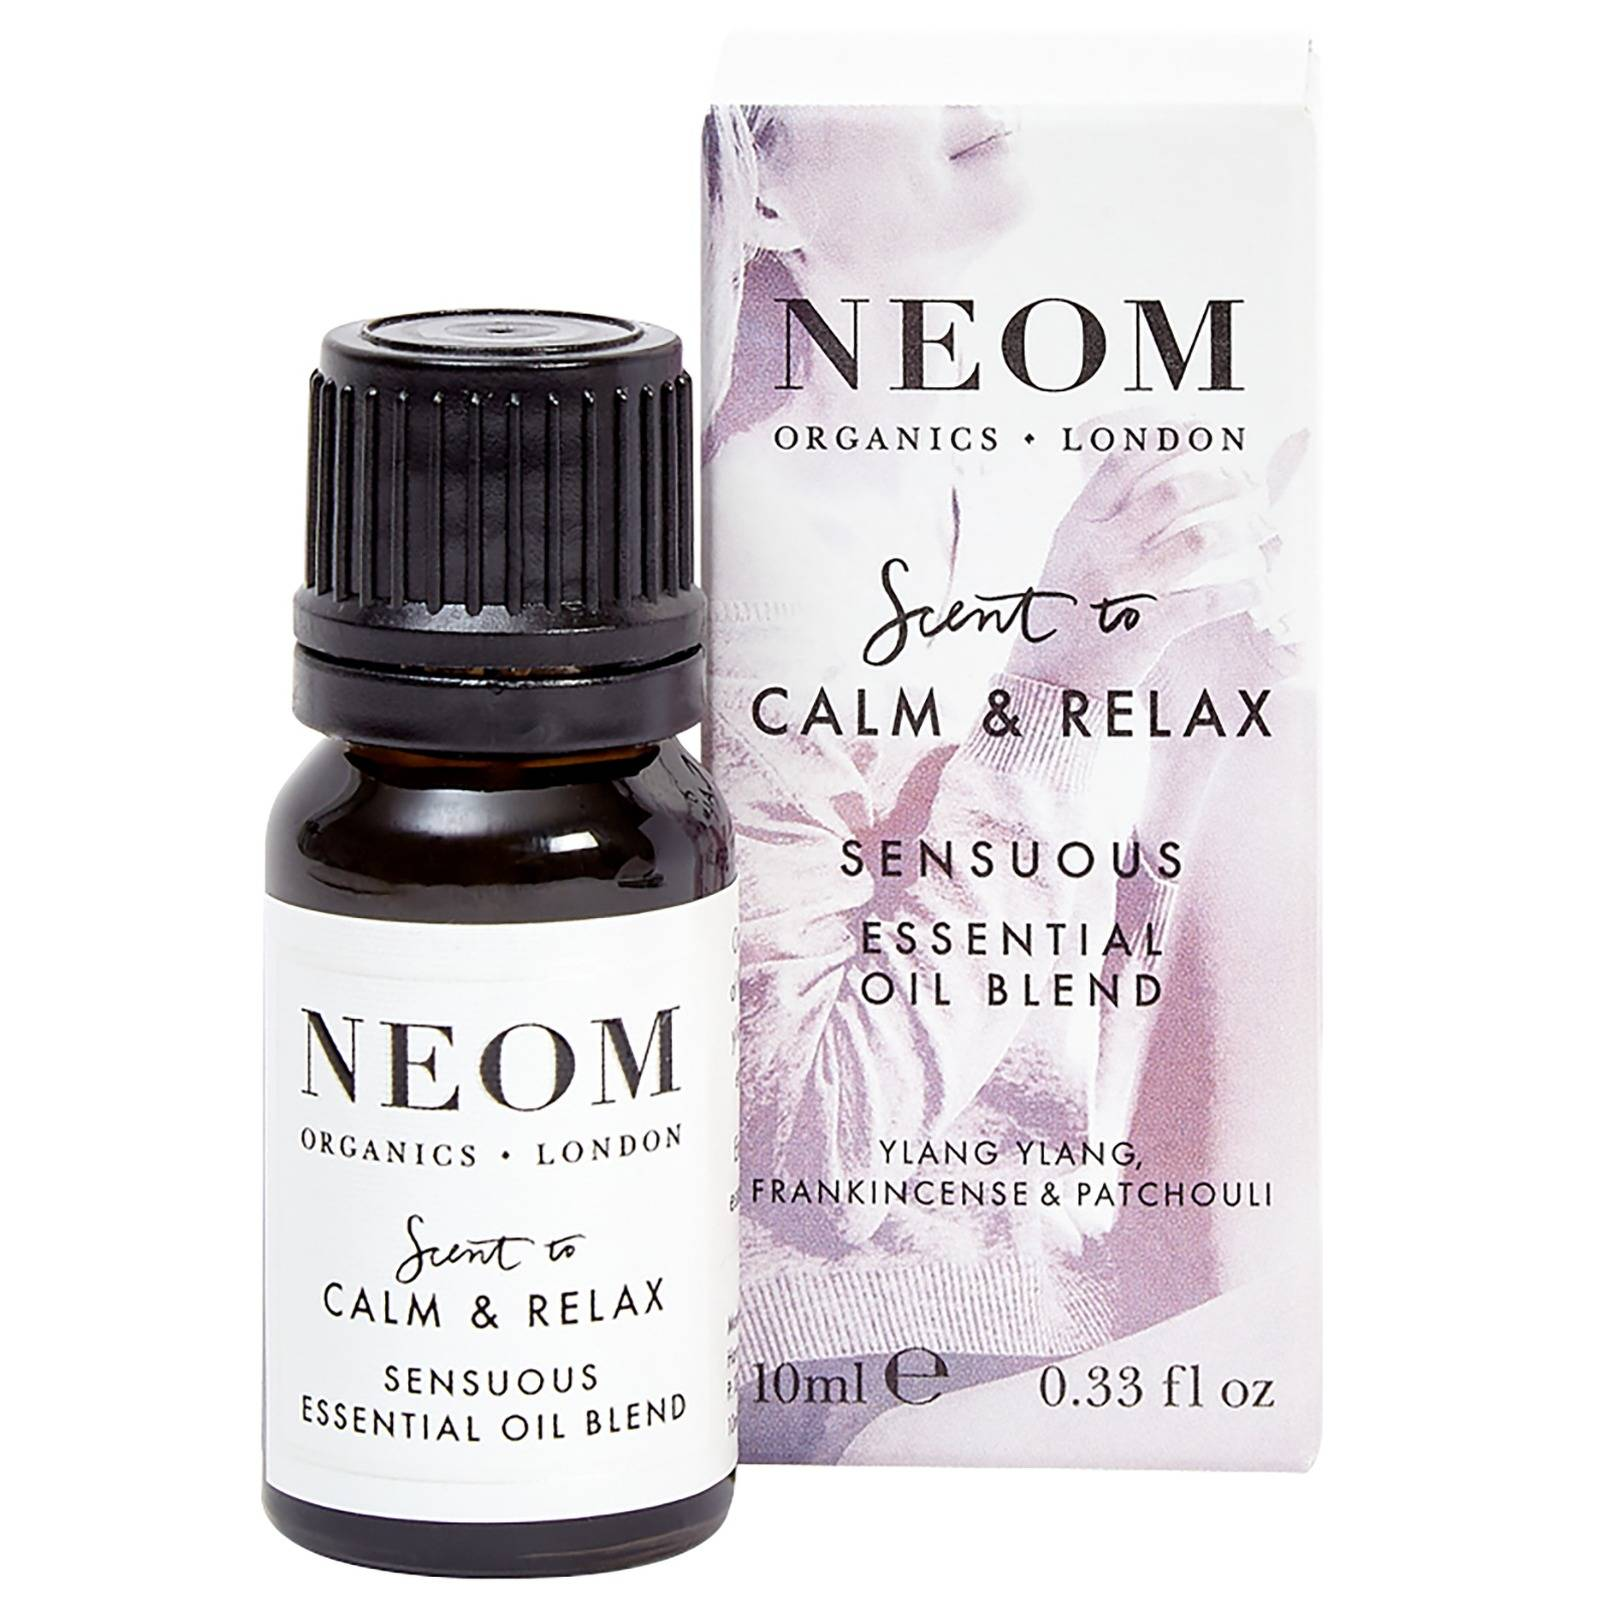 Neom Organics London Scent To Calm & Relax Sensuous Essential Oil Blend 10 ml